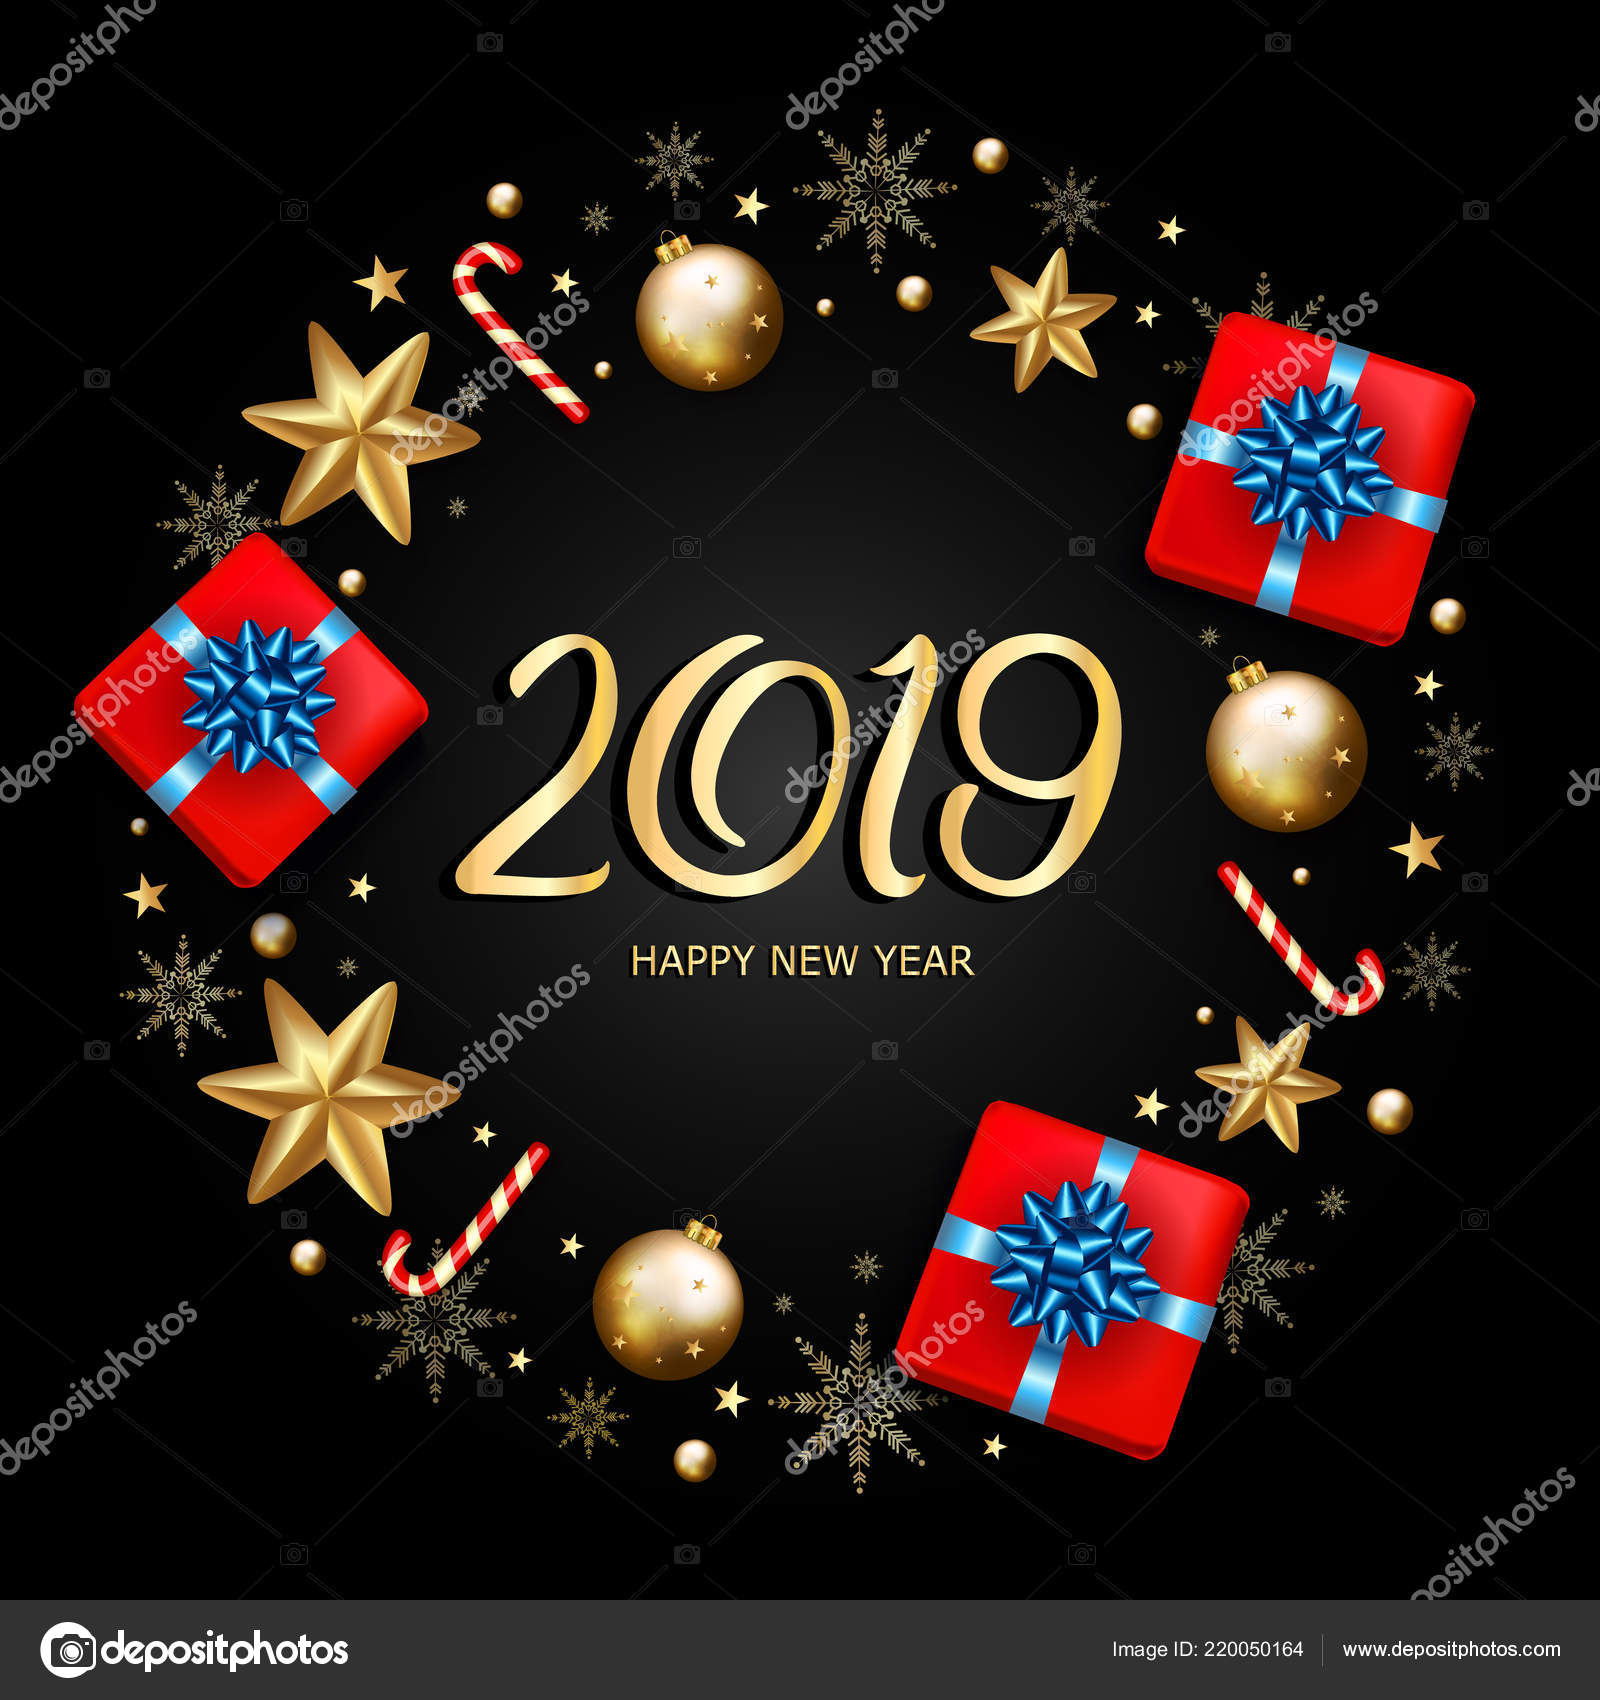 2019 new year decorative border made of festive elements on blac stock vector